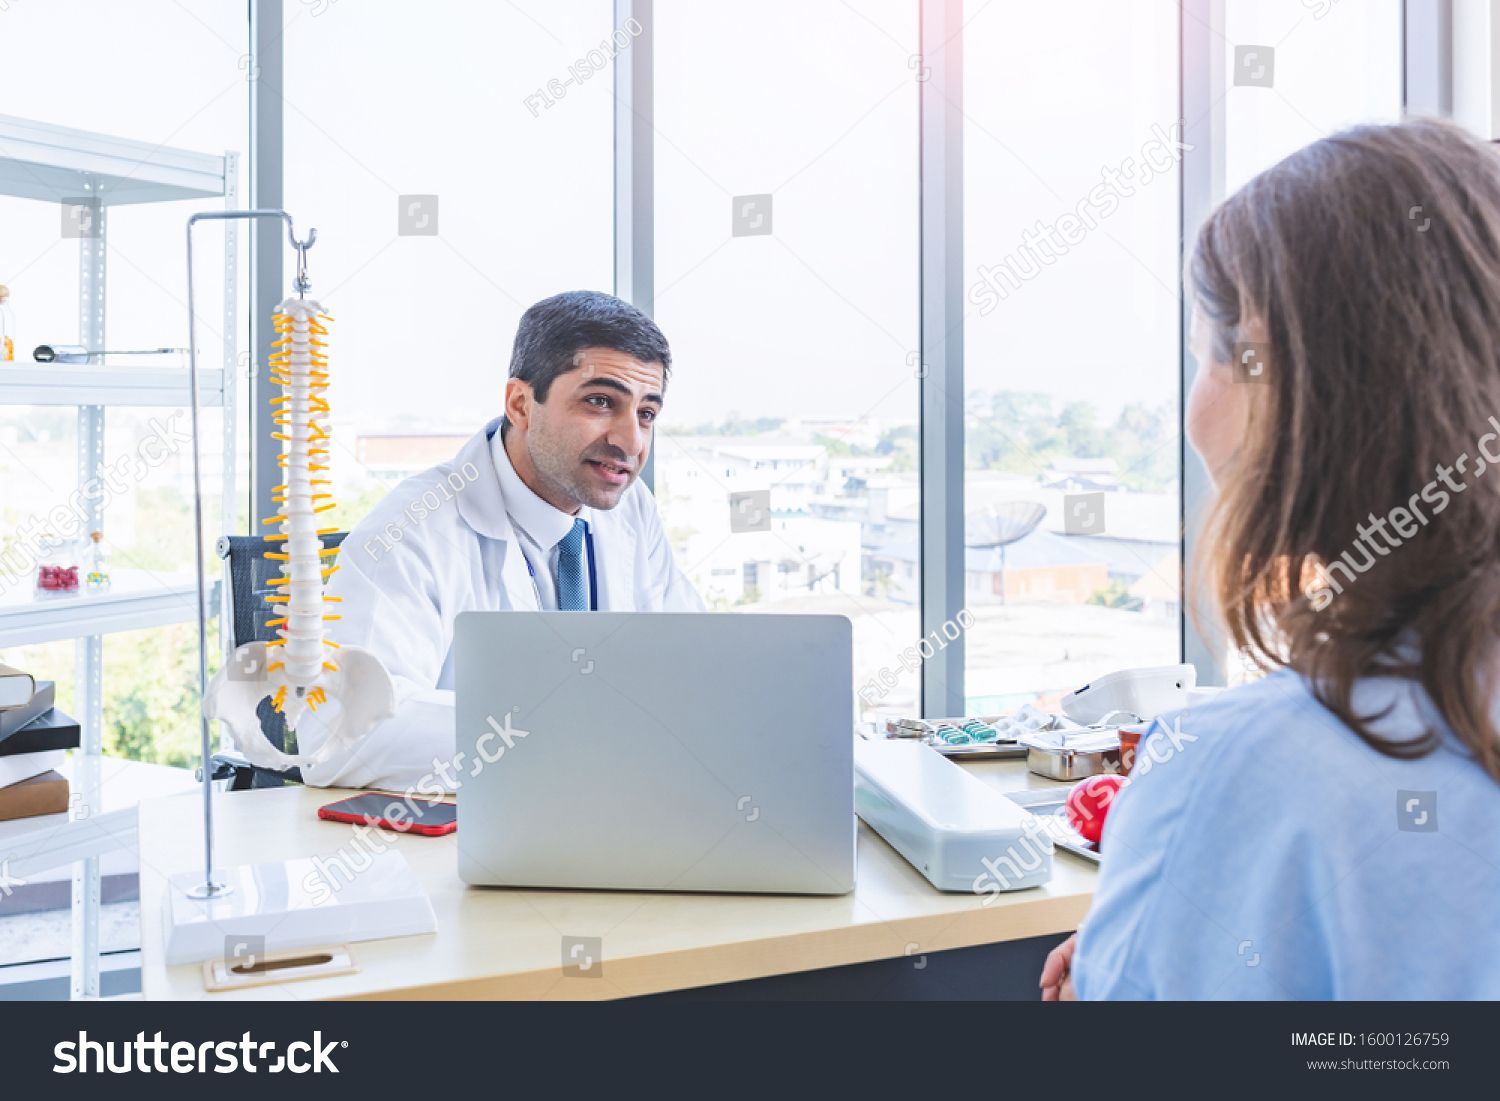 Serious Doctor Examining A Patient Obesity Royalty-Free